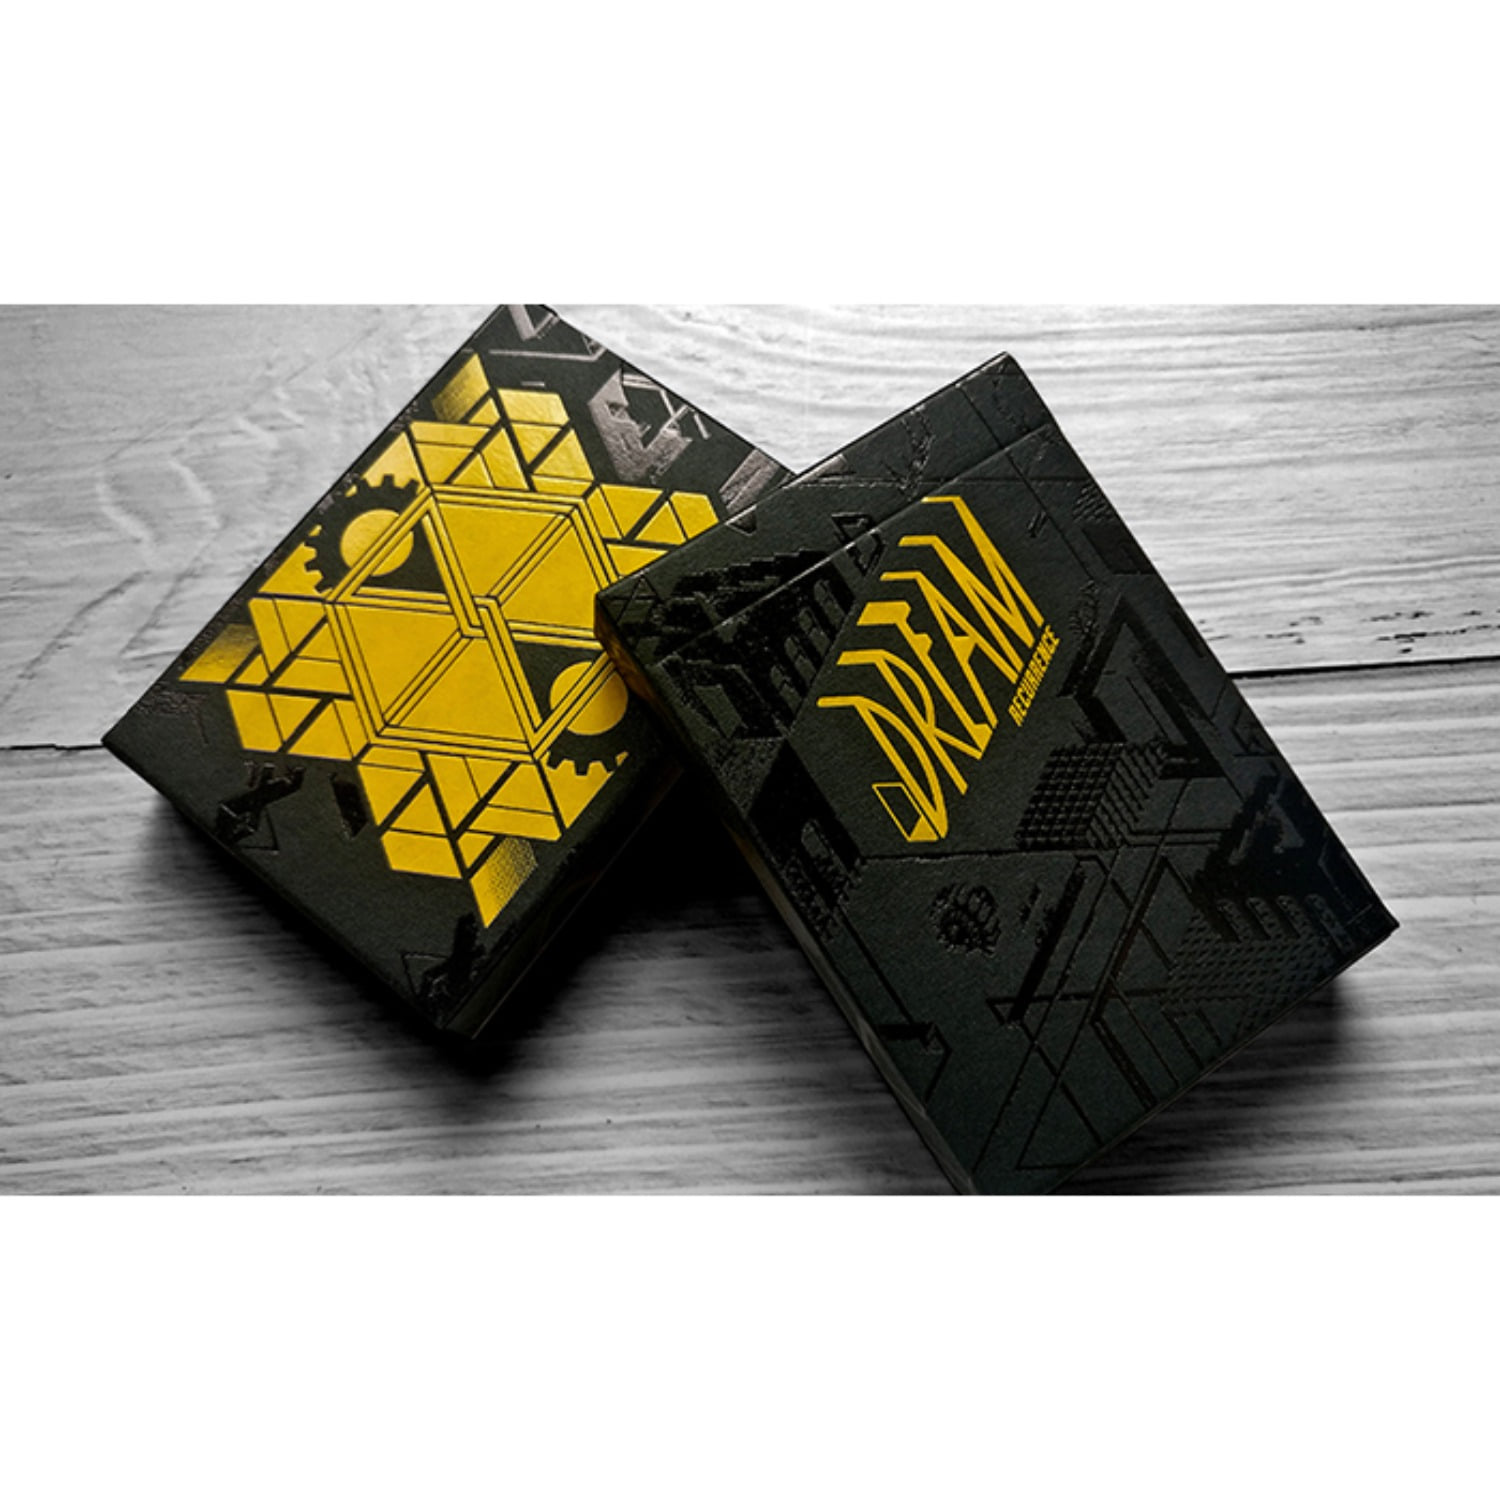 [딜럭스/드림리큐어런스 이그쥬버런스]Dream Recurrence Exuberance Playing Cards (Deluxe Edition)